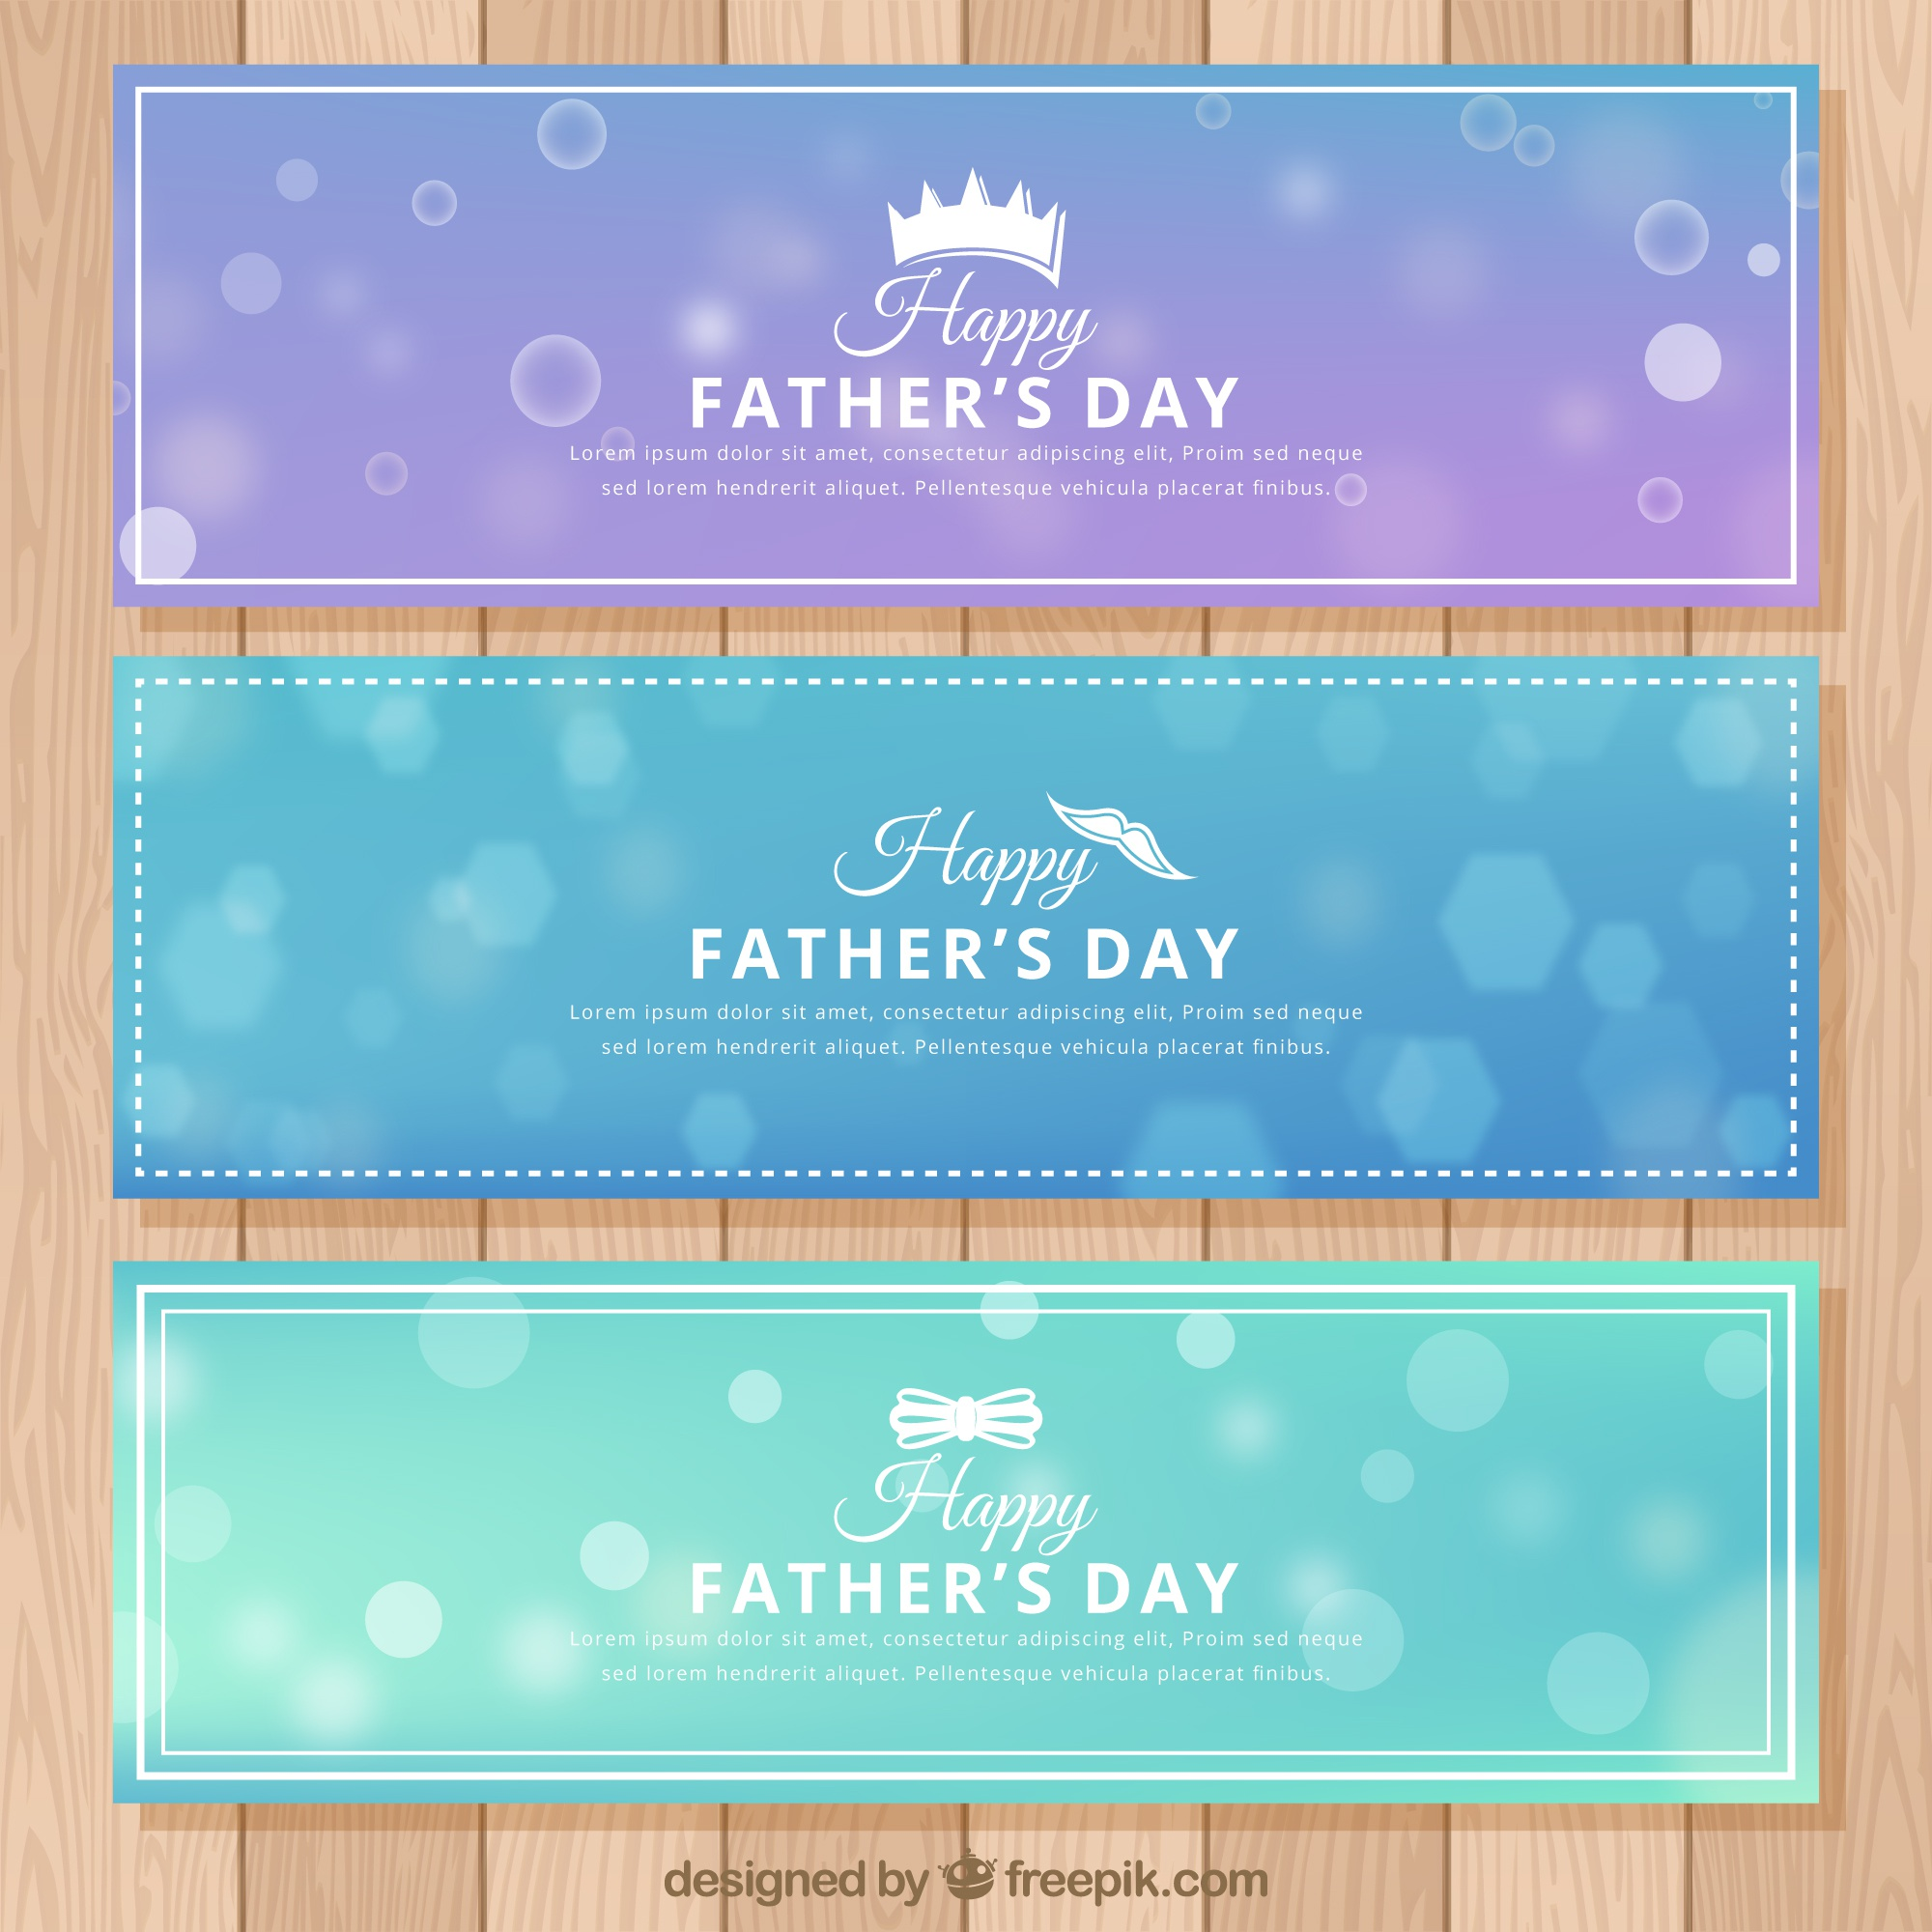 Set of father's day banners with blurred background